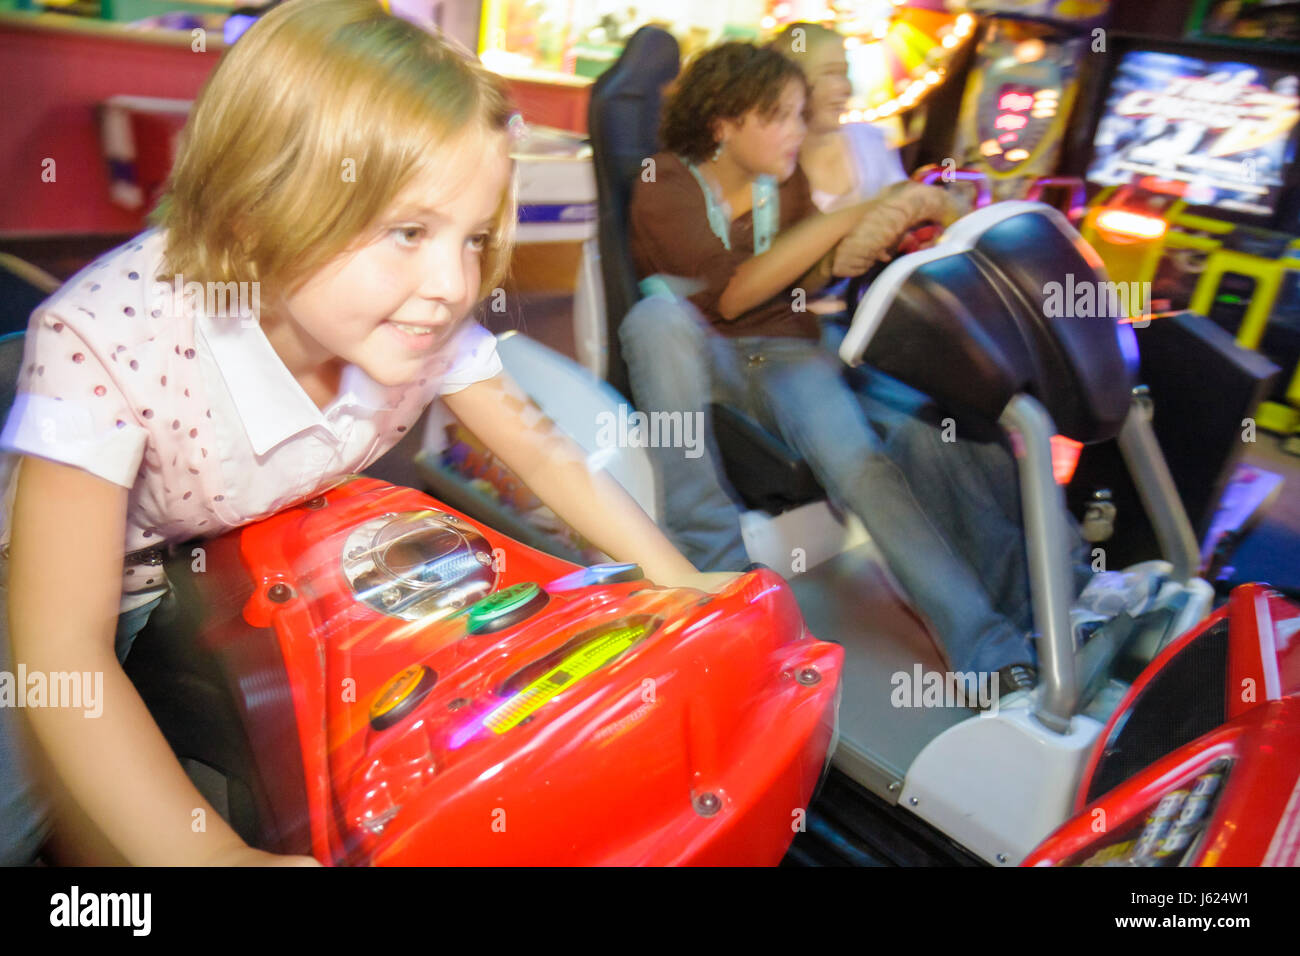 Indiana Valparaiso Inman's Fun and Party Center video game arcade game race bike simulator girl child play amusement - Stock Image